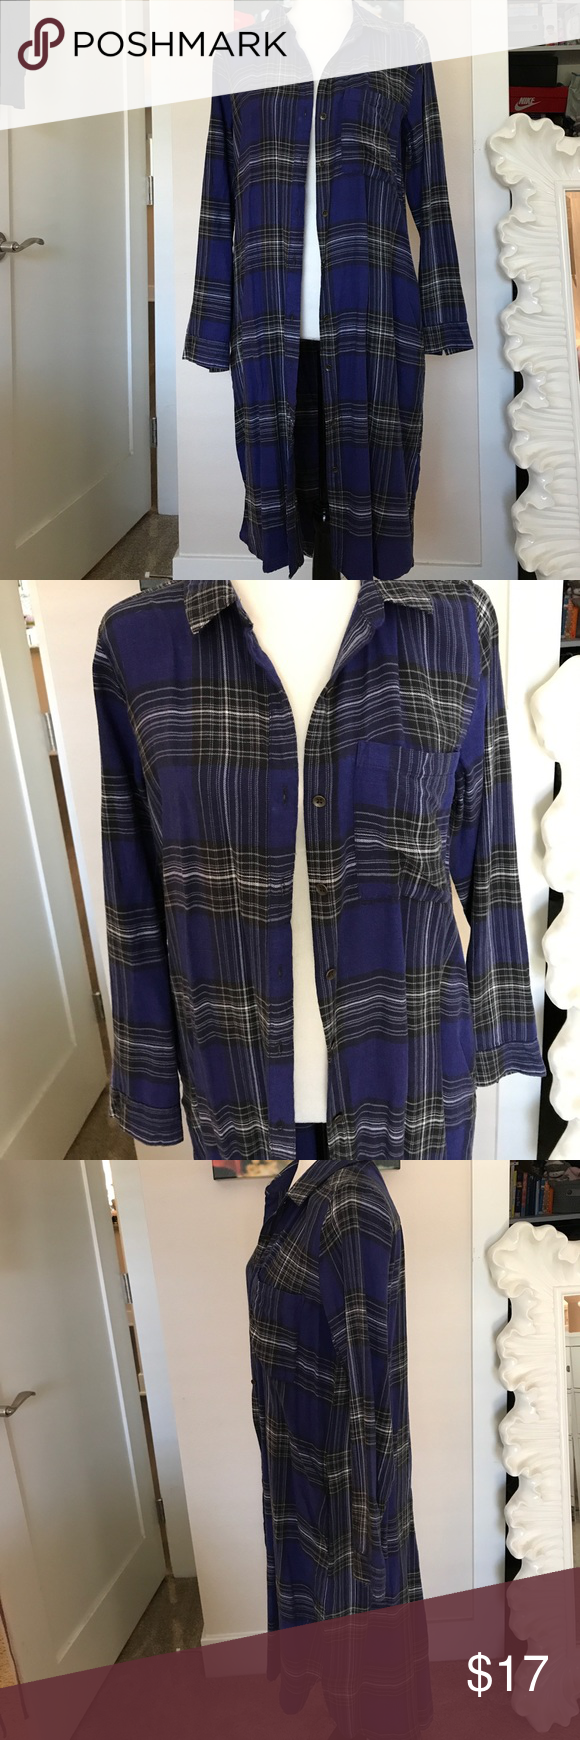 Big flannel outfits  NWT size Large flannel DressTop NWT  Plaid dress Flannels and Plaid